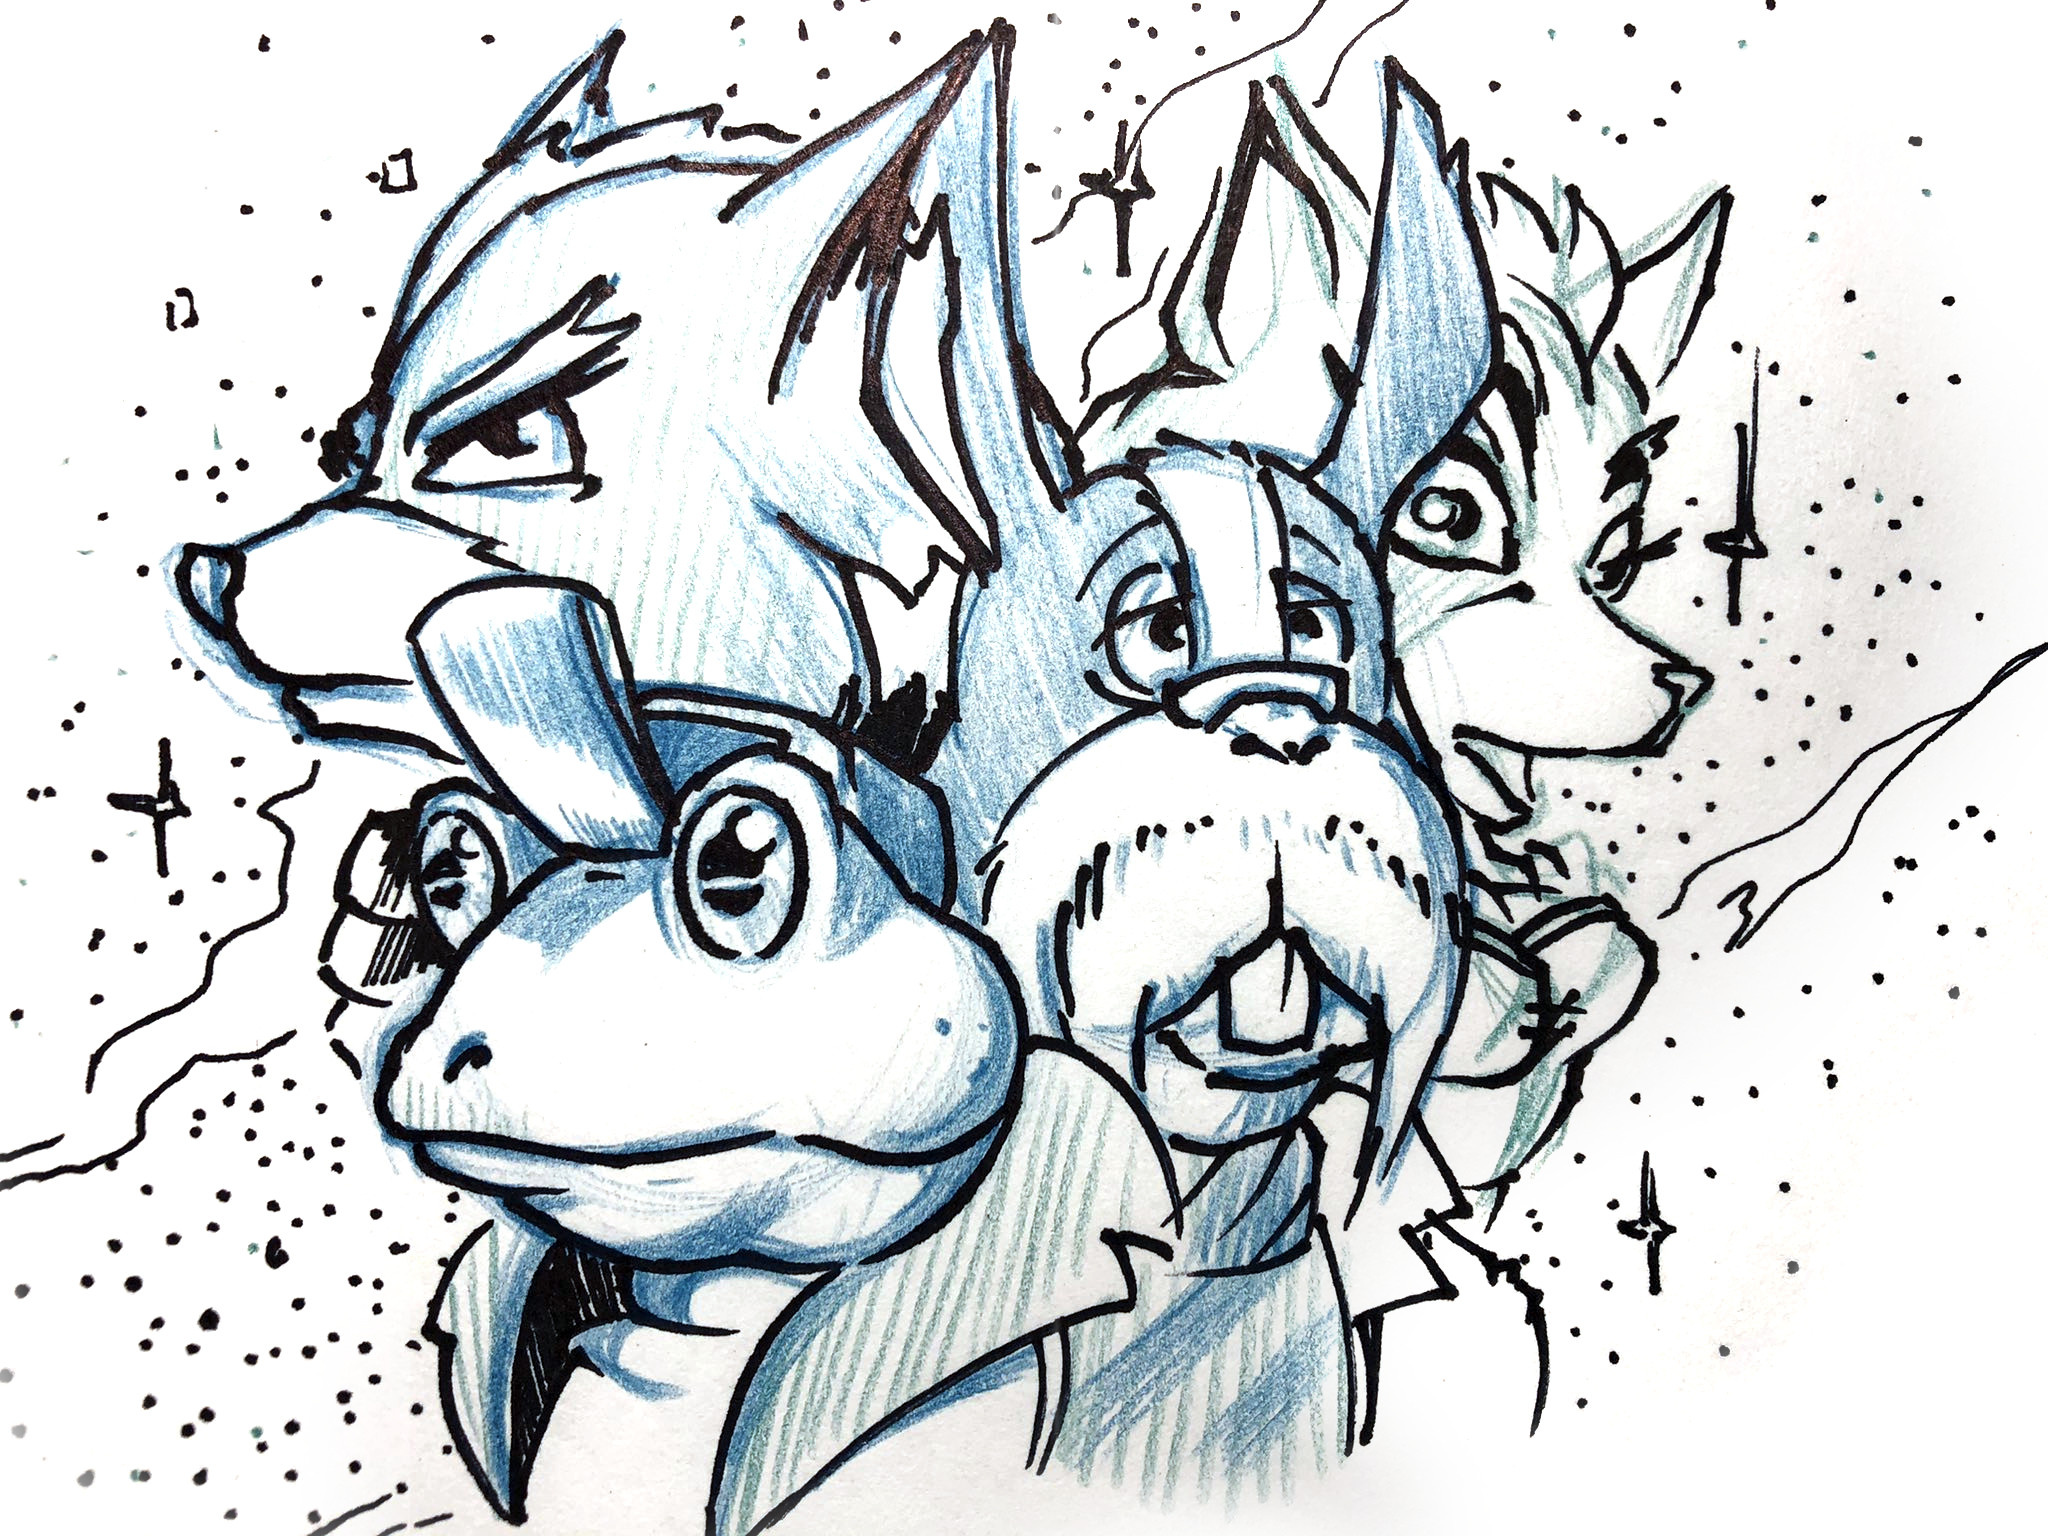 Kev's initial sketch for Star Fox Adventures